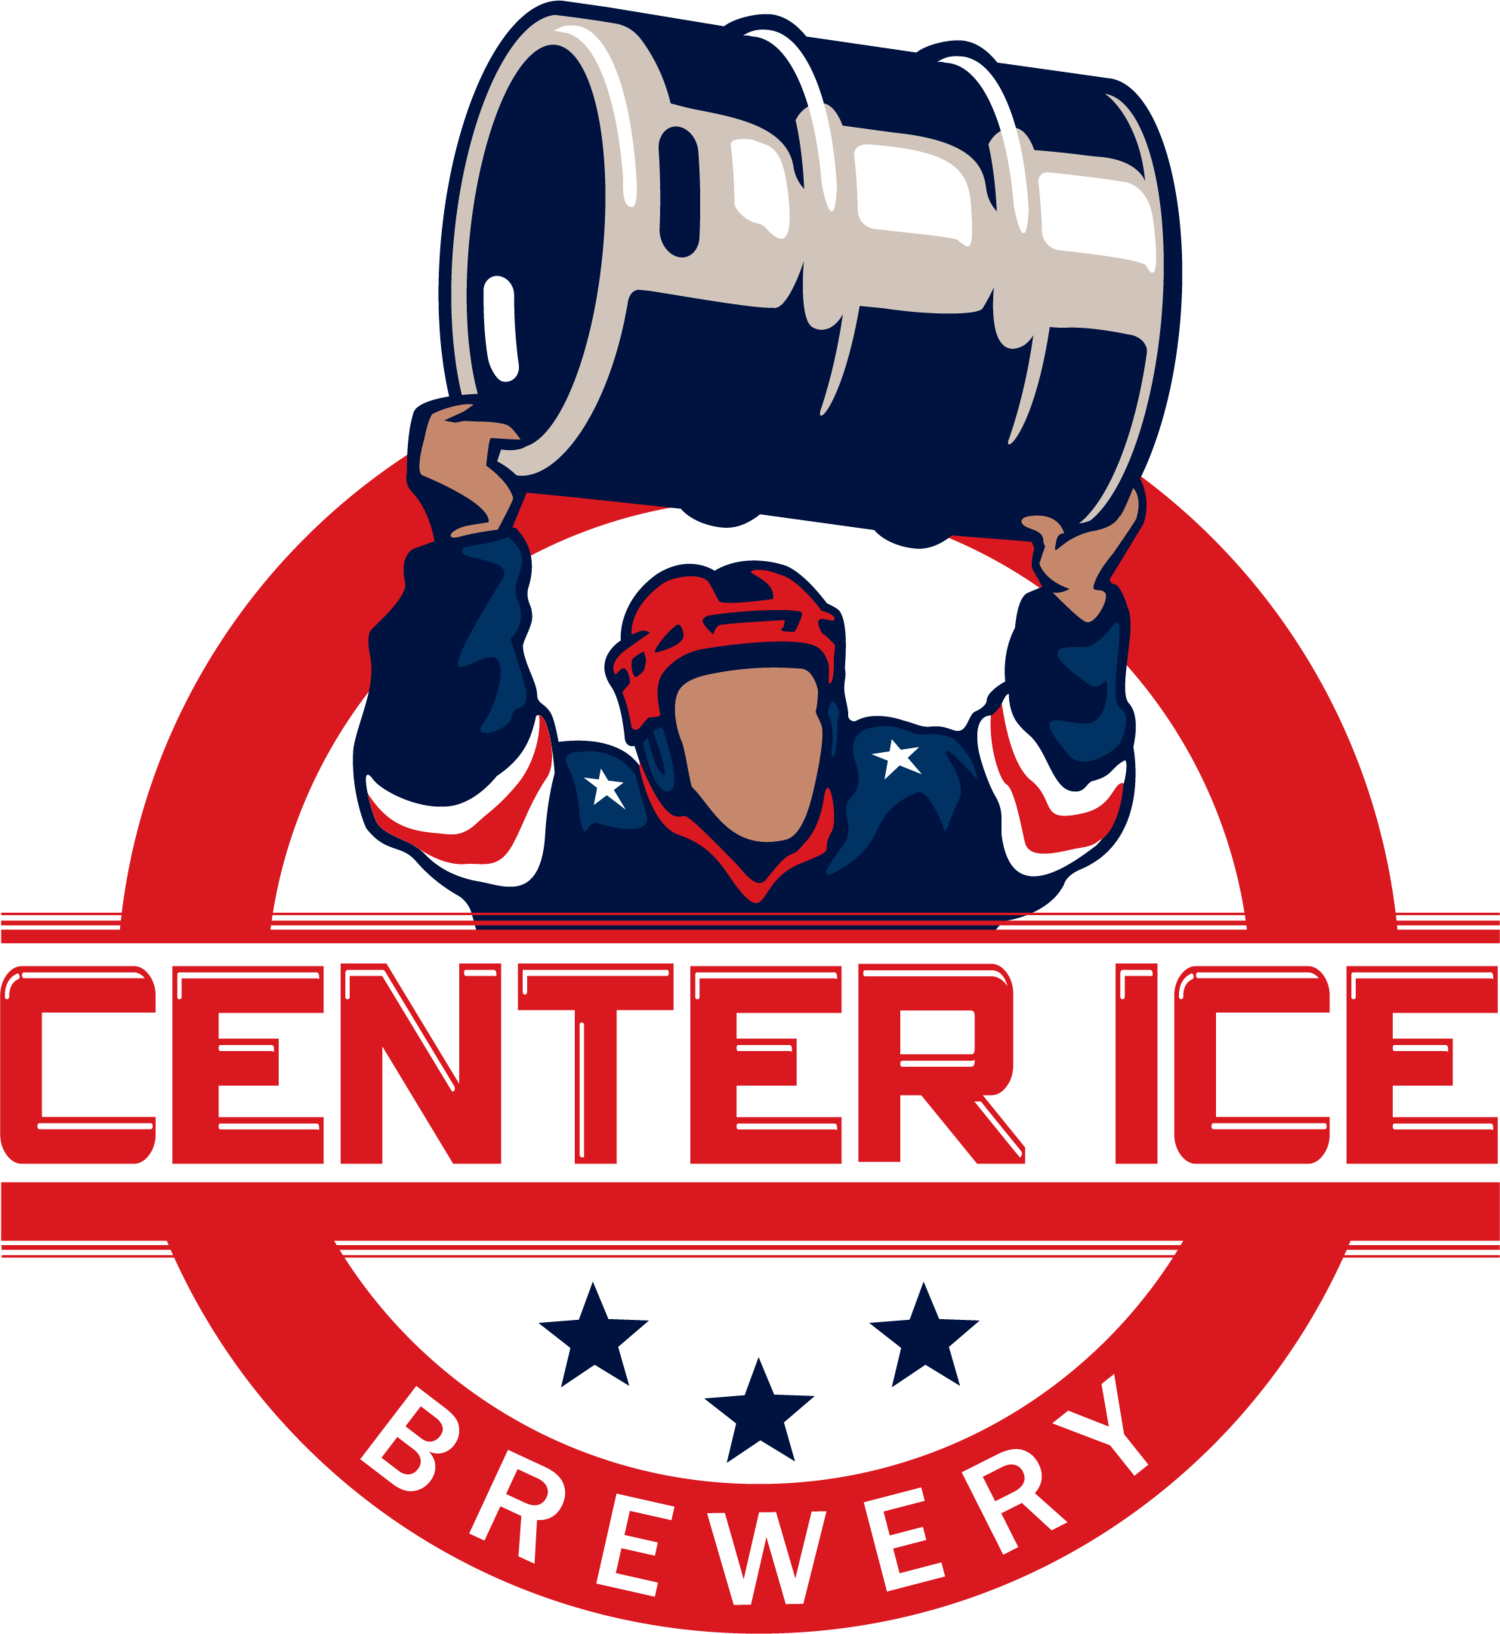 Center Ice Brewery